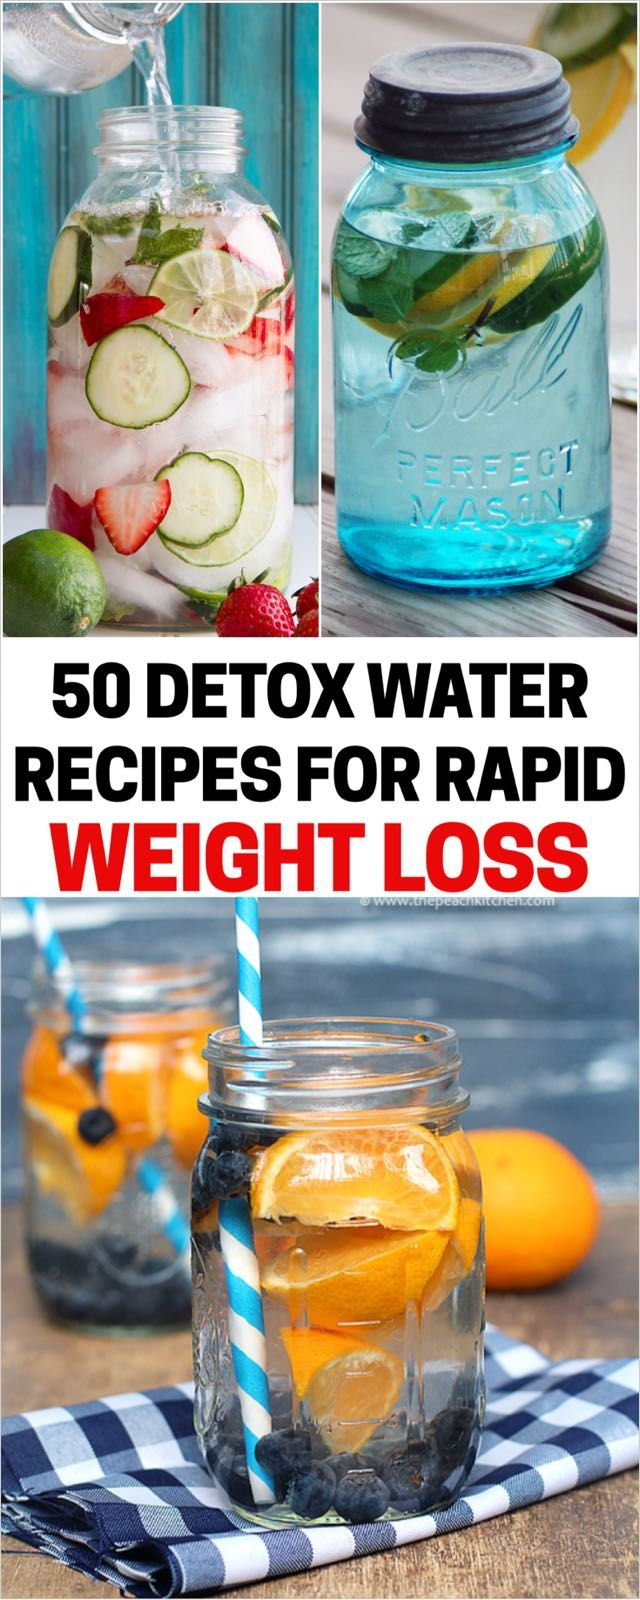 Top  Detox Water Recipes For Rapid Weight Loss  Water recipes